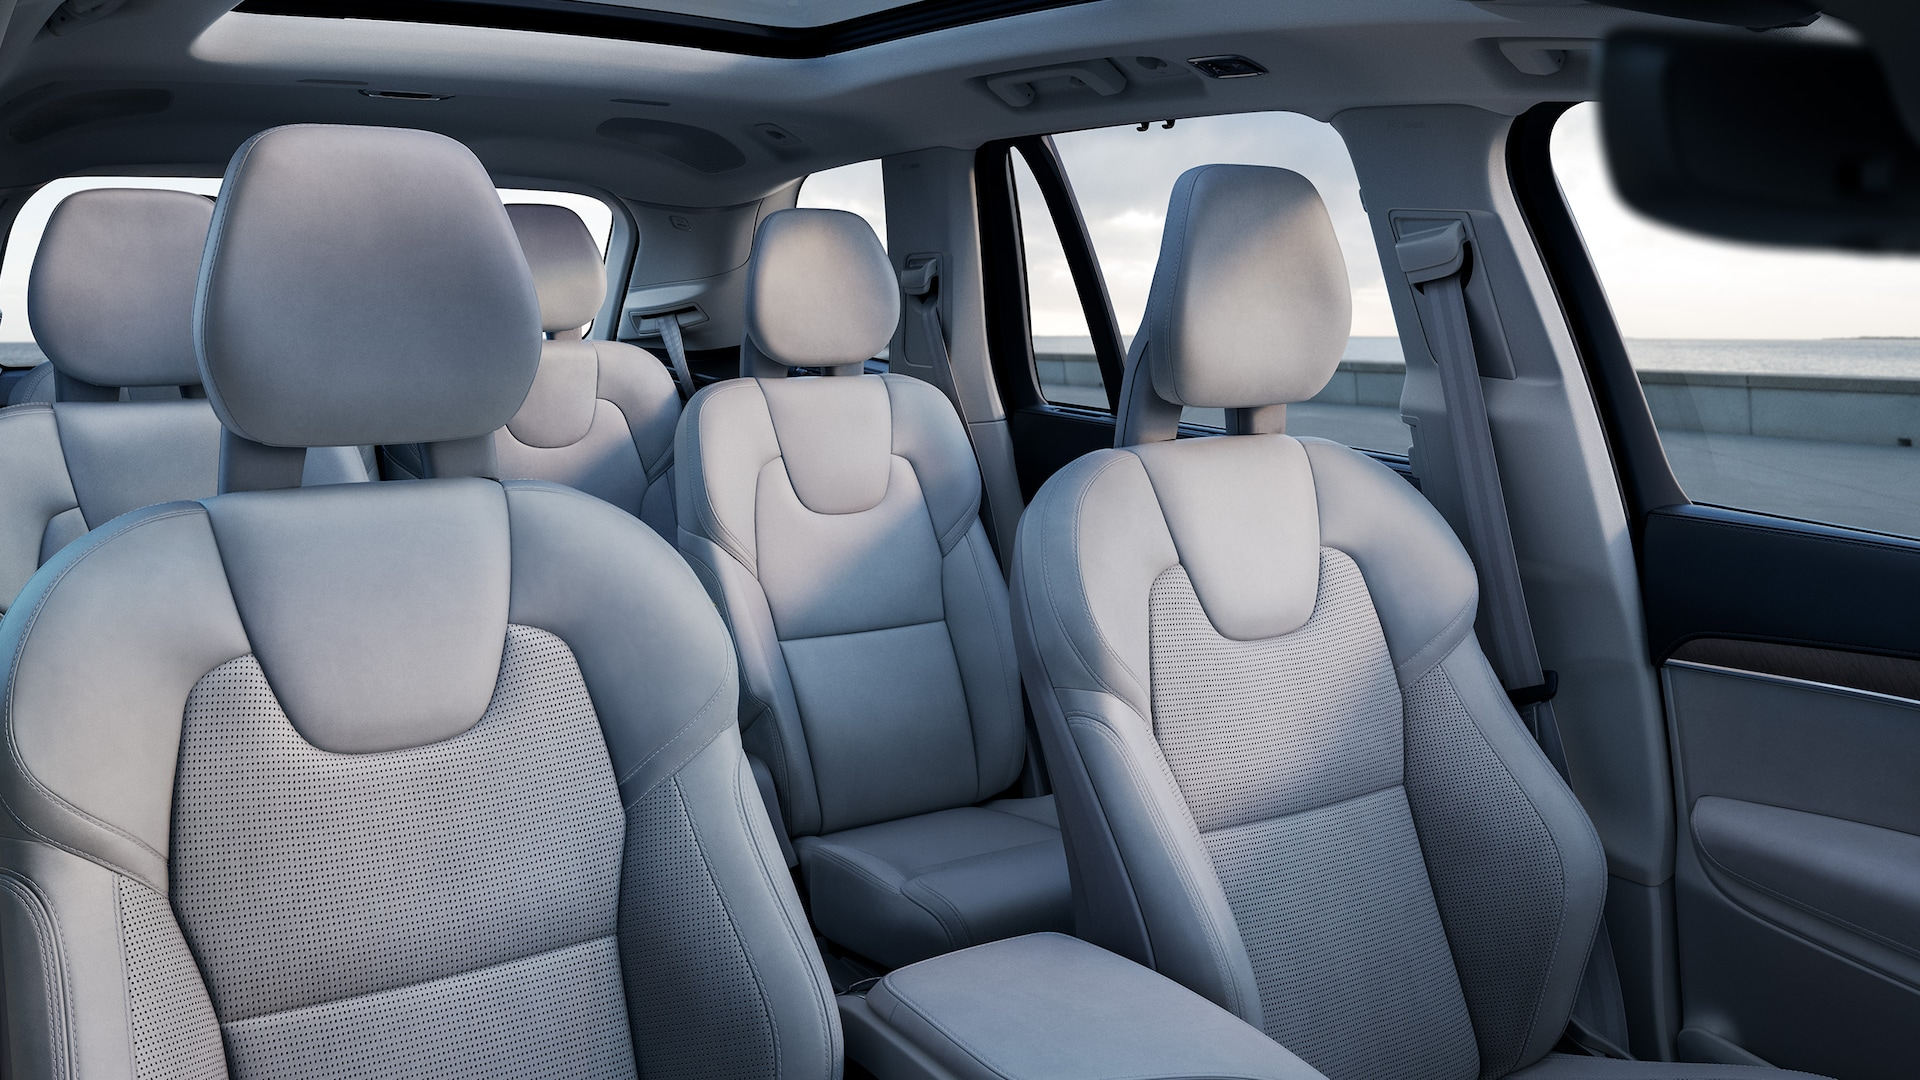 Inside a Volvo XC90 with 3 rows, blonde interior on seats.